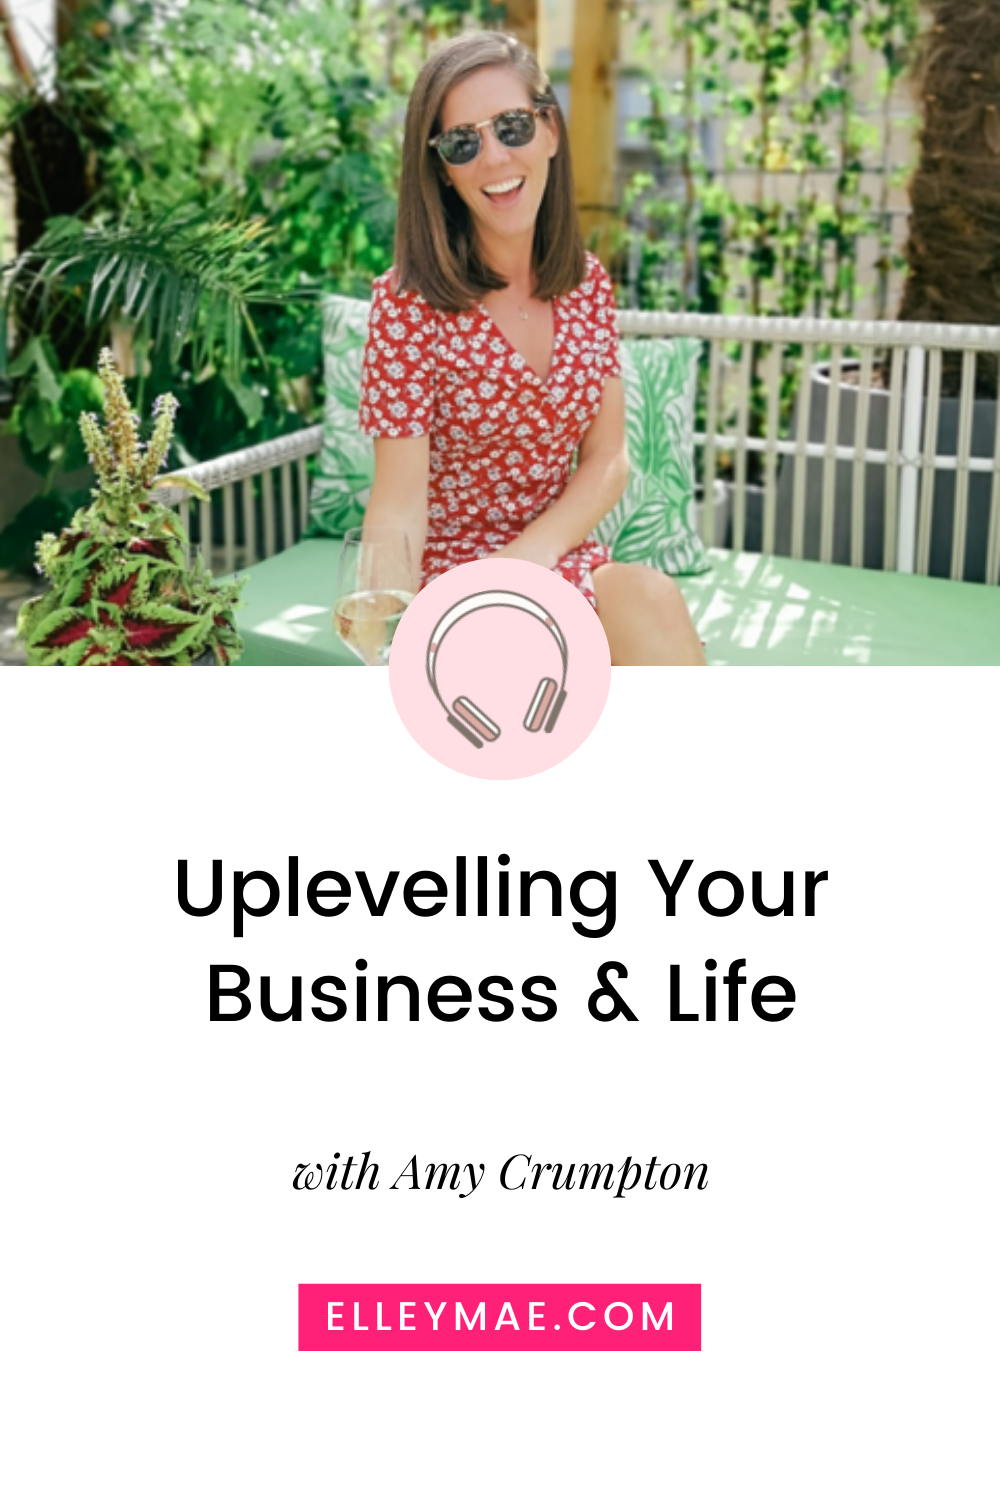 Uplevelling Your Business and Life